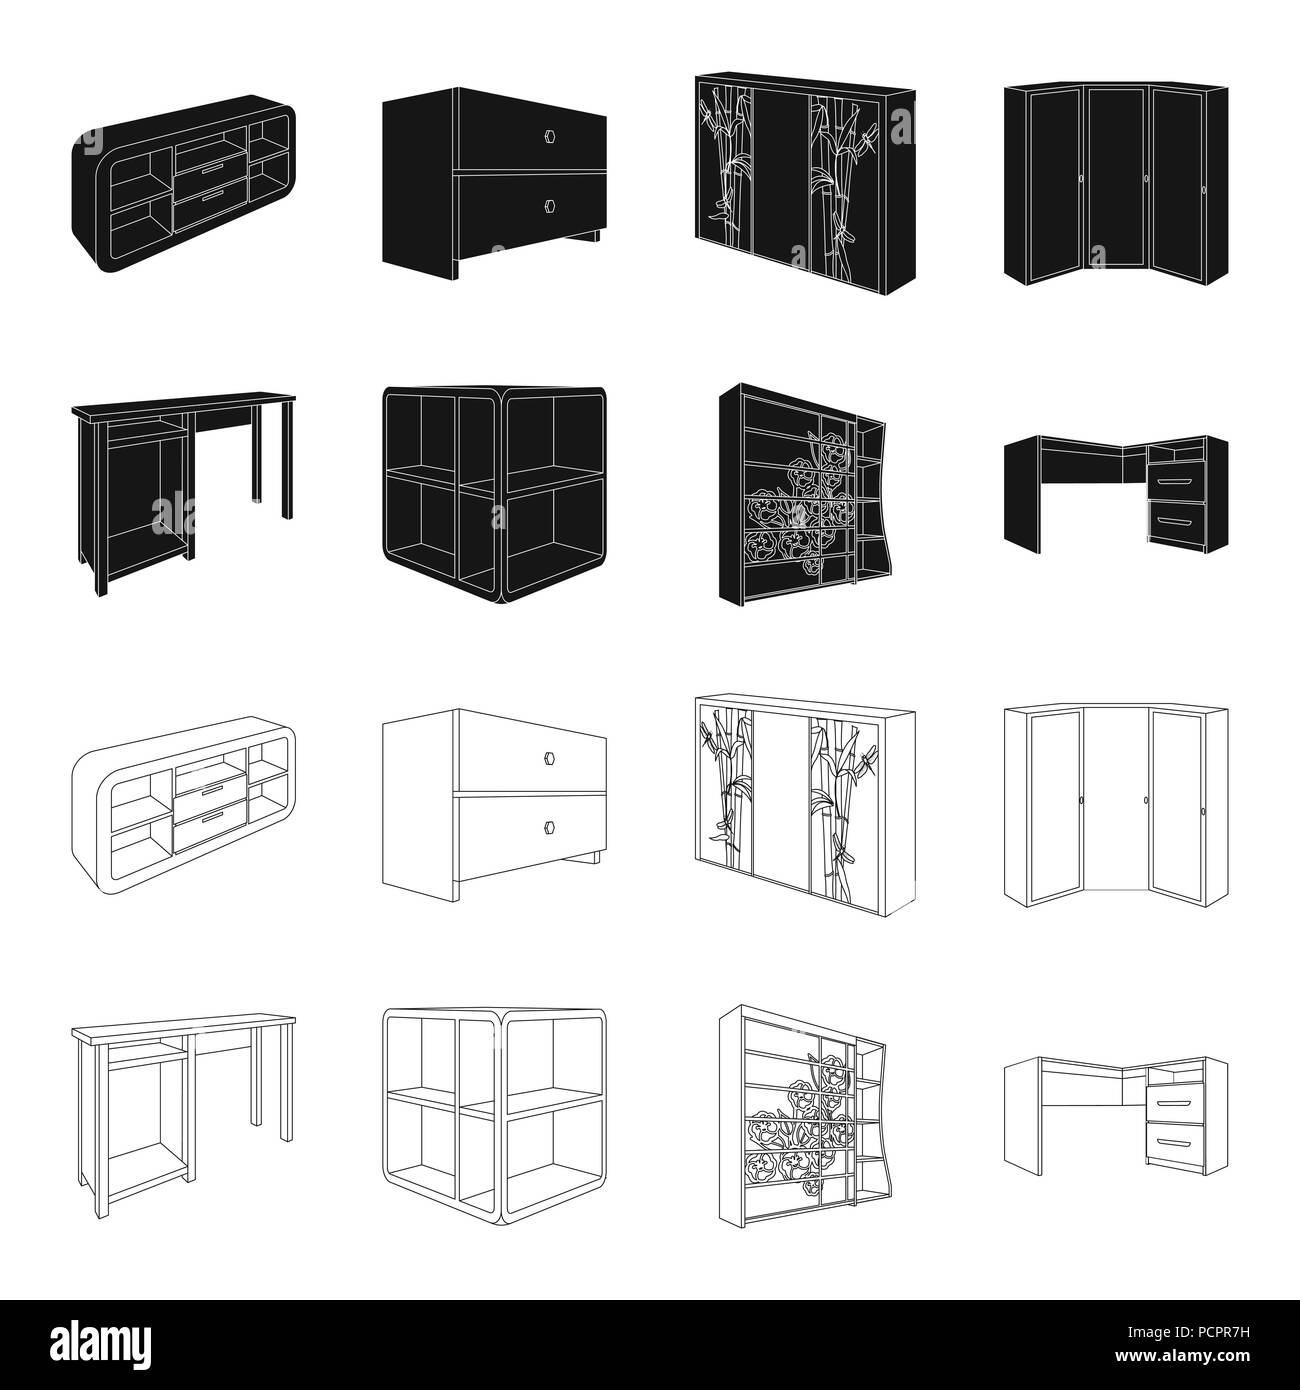 Dressing Table Corner Shelves Computer Desk Wardrobe With Glass Bedroom Furniture Set Collection Icons In Black Outline Style Vector Symbol Stock Stock Vector Image Art Alamy